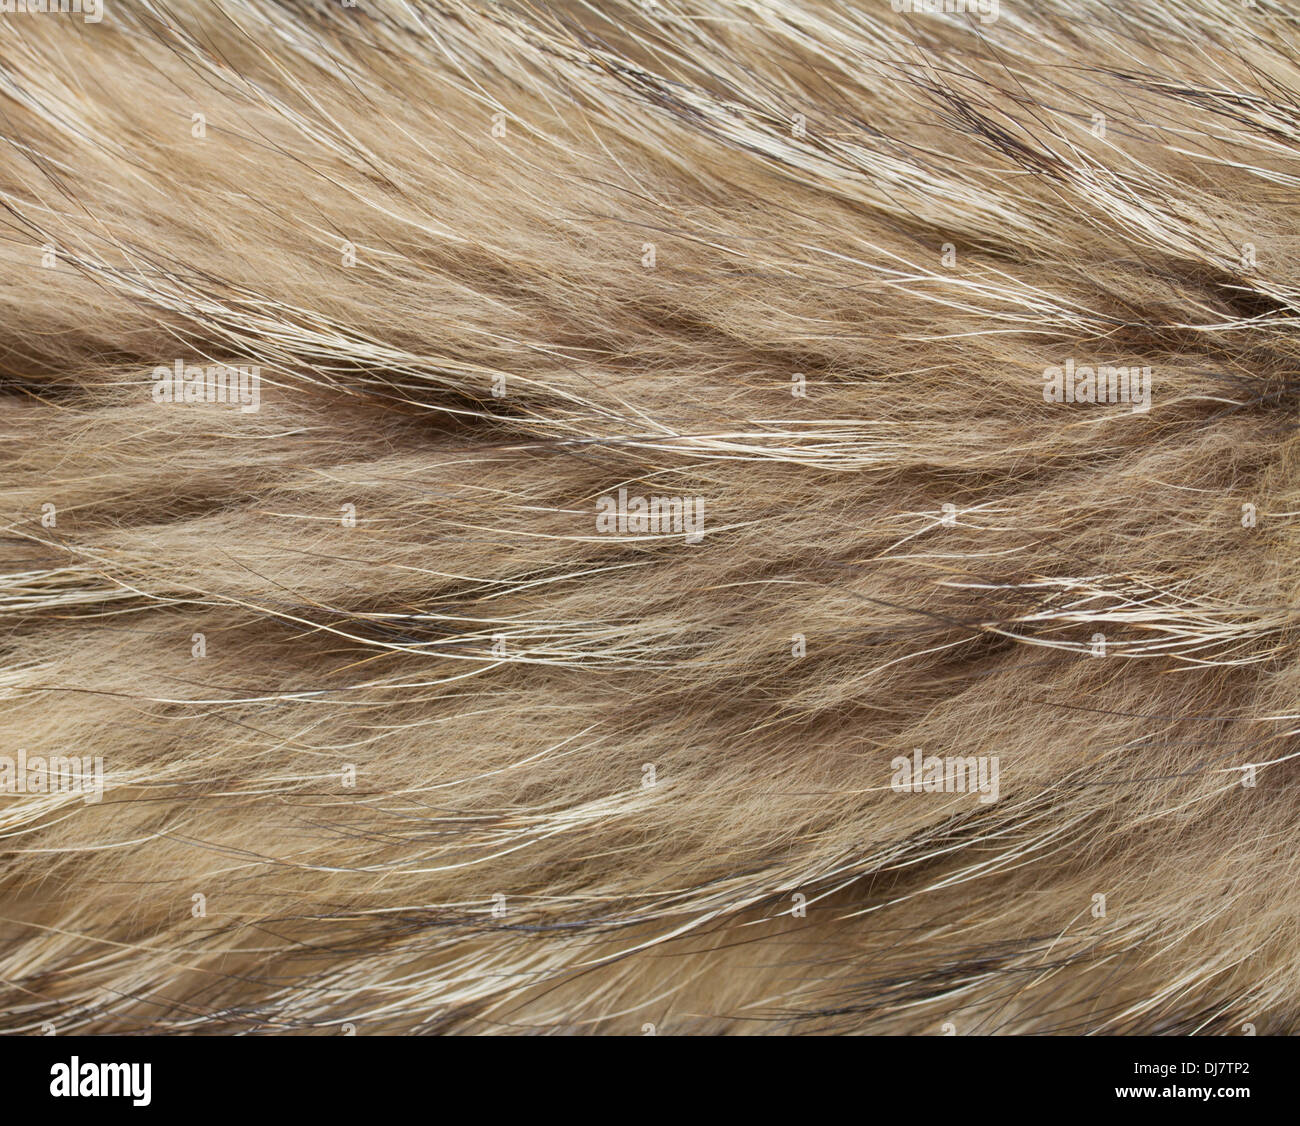 Animal Skin Rug Stock Photos & Animal Skin Rug Stock